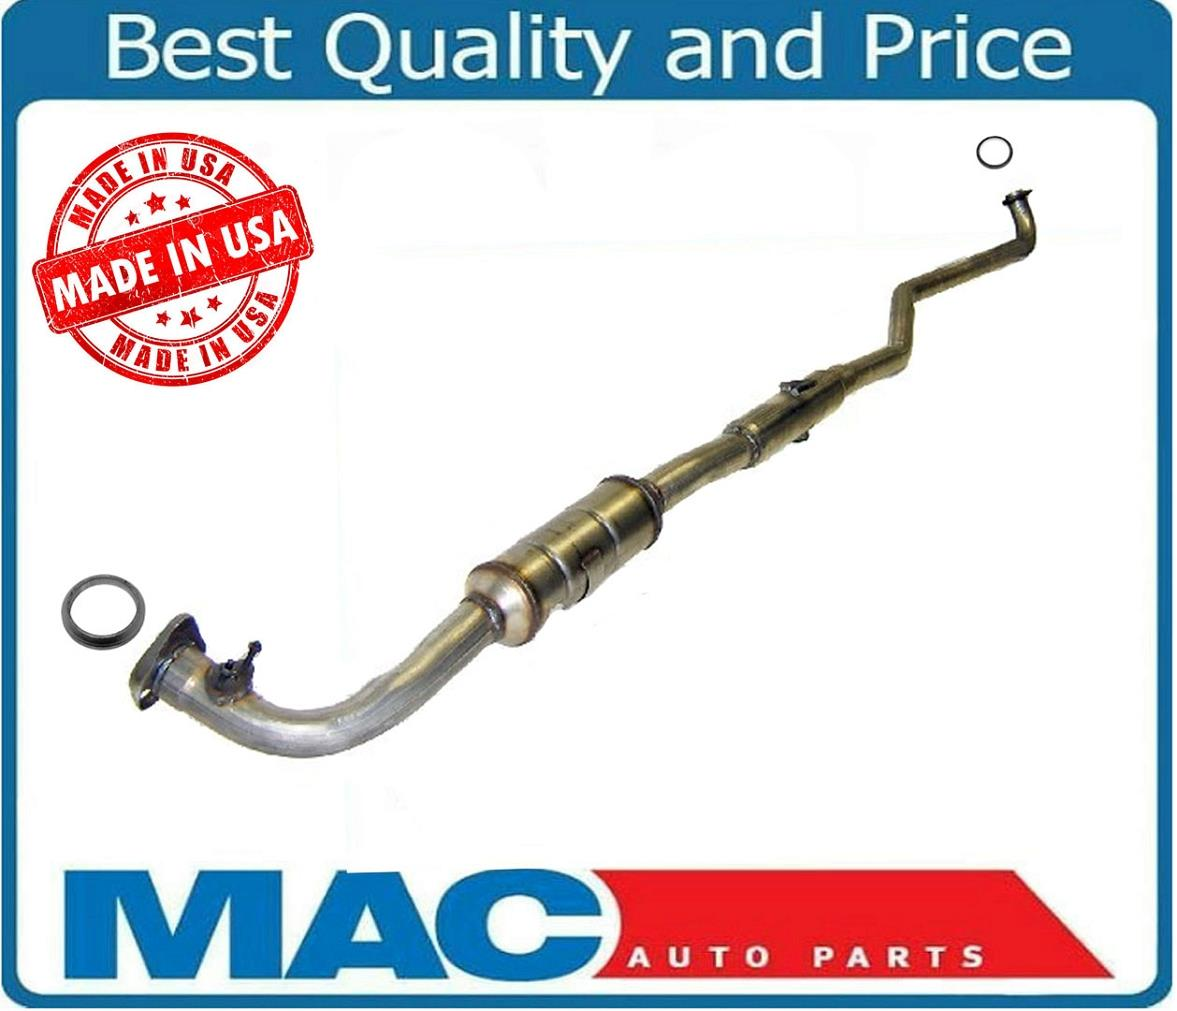 98-02 TOYOTA COROLLA 1.8L CATALYTIC CONVERTER DIRECT FIT FITS